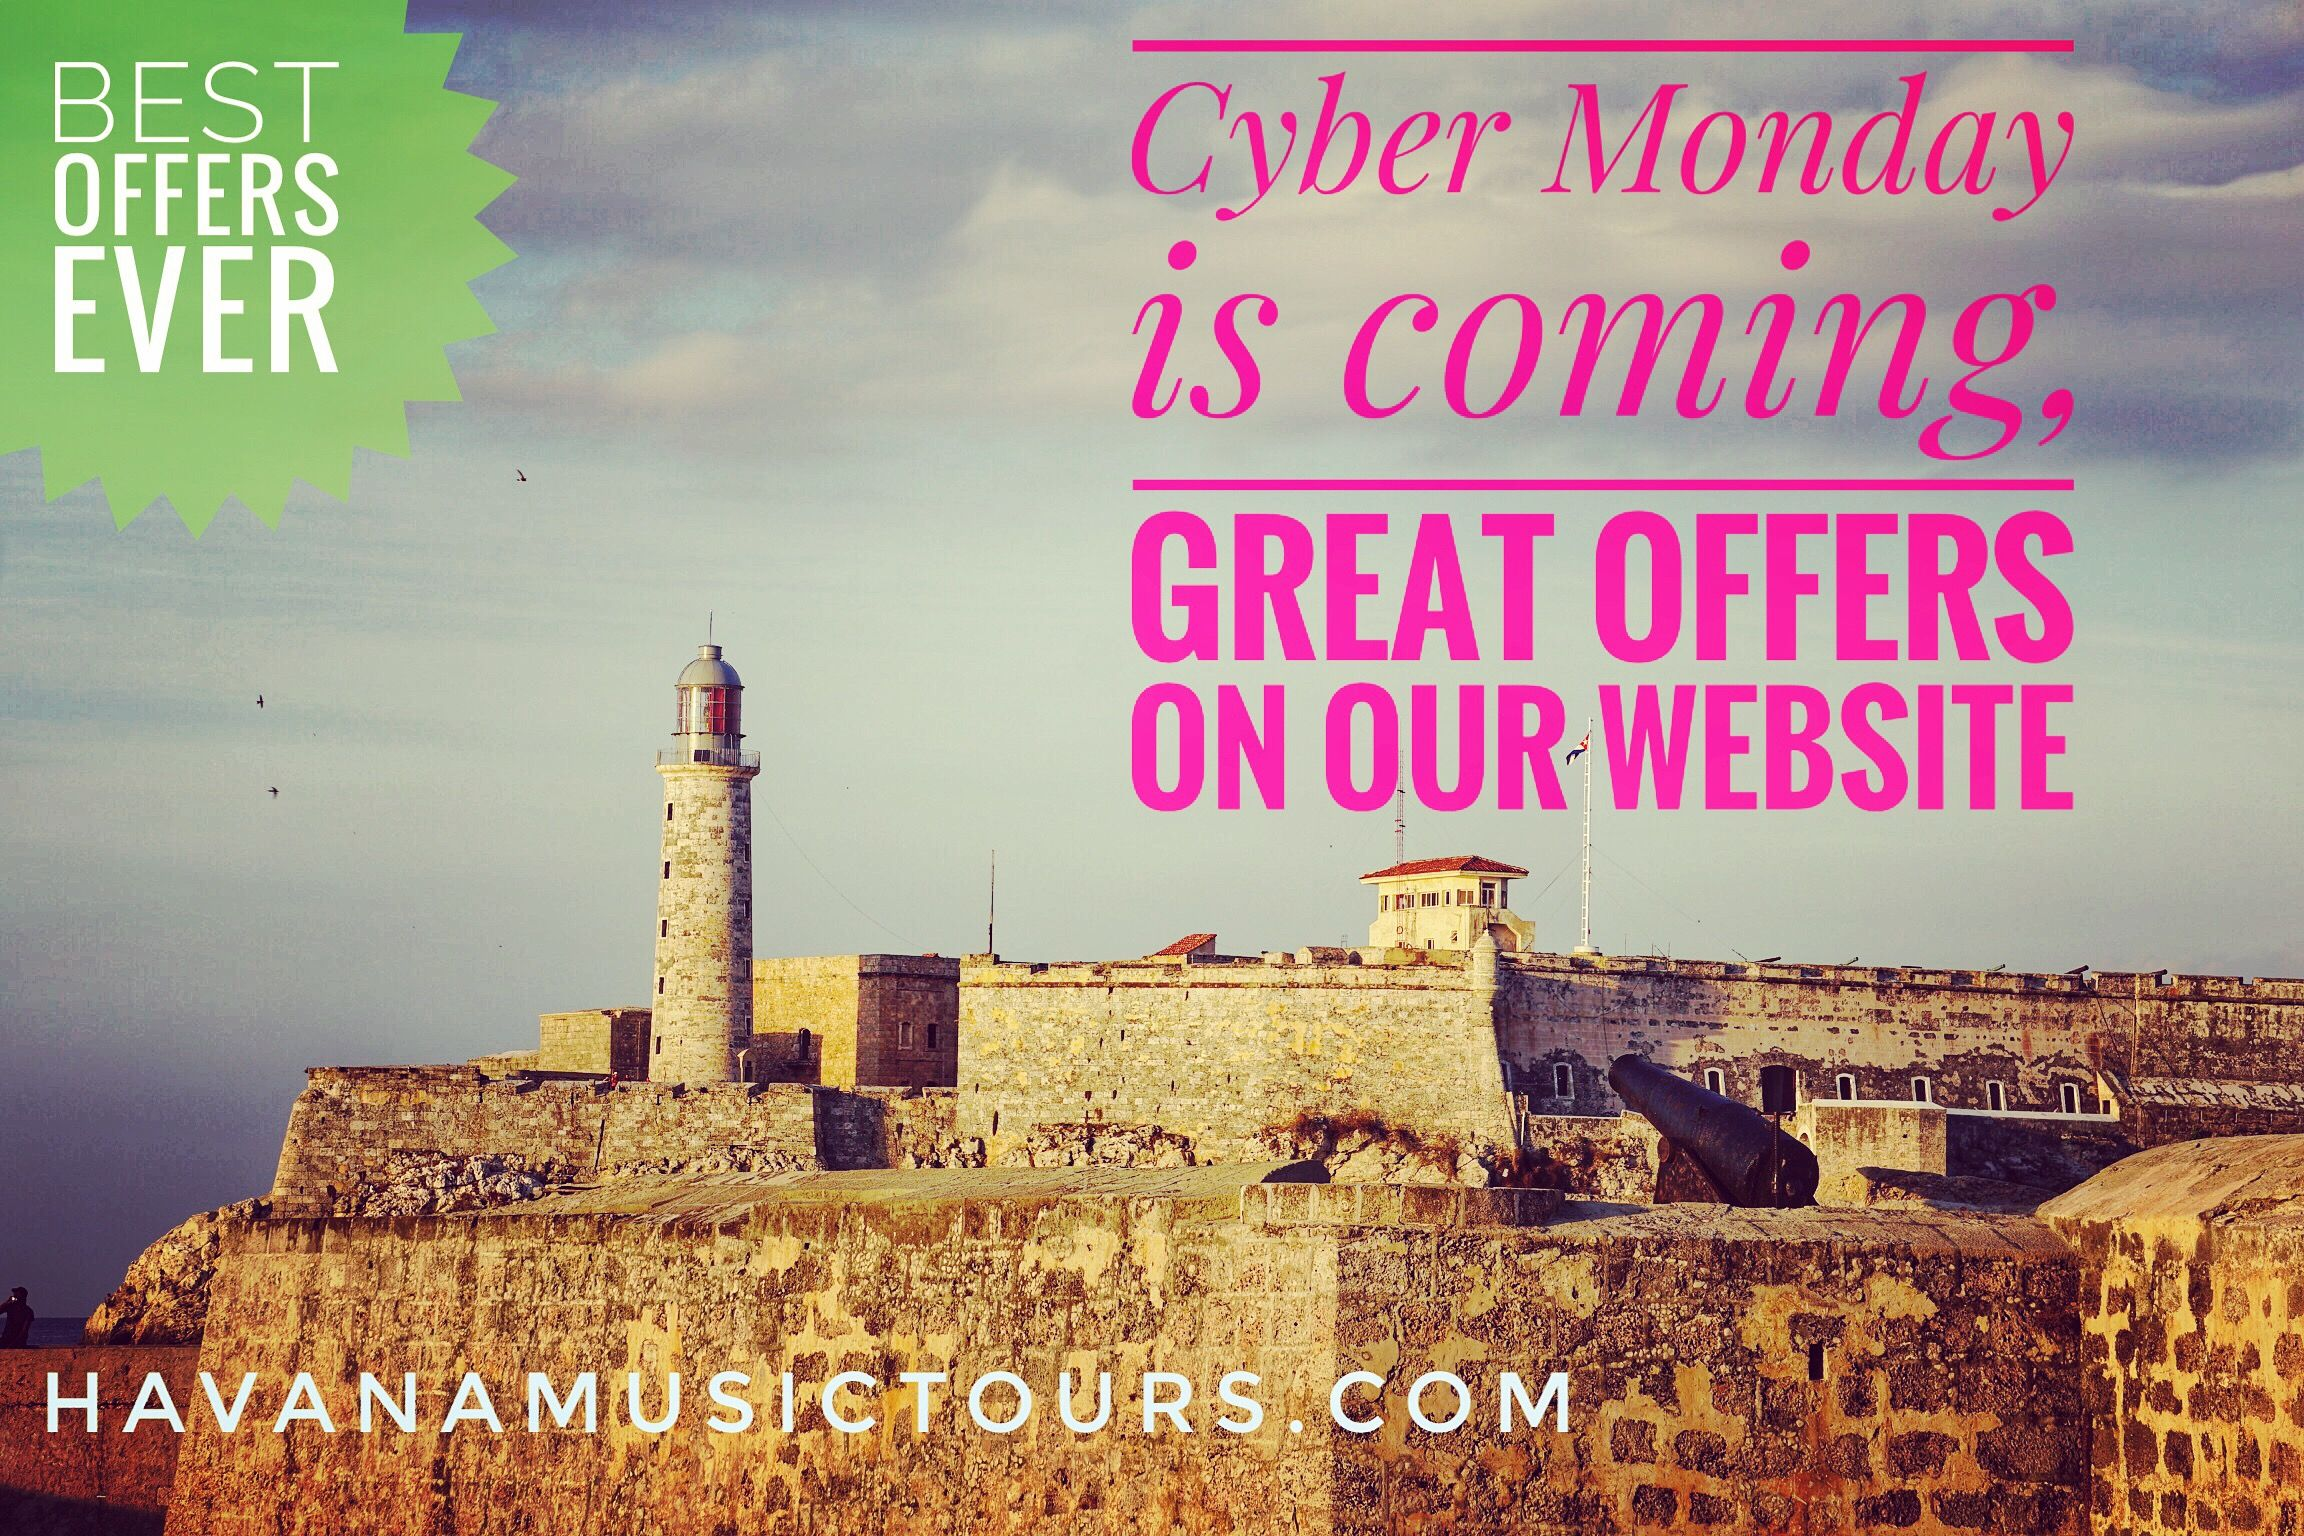 Check our offers for Cyber Monday on our website next monday! . . . #musicacubana🇨🇺 #musictours #blackfriday #cybermonday #greatdeals #traveldealsonline #travelscuba #goodtravels #goodoffersonline #musictravels #holidaysoptions #holidaytraveldeals #holidayspecial #holidayoffers